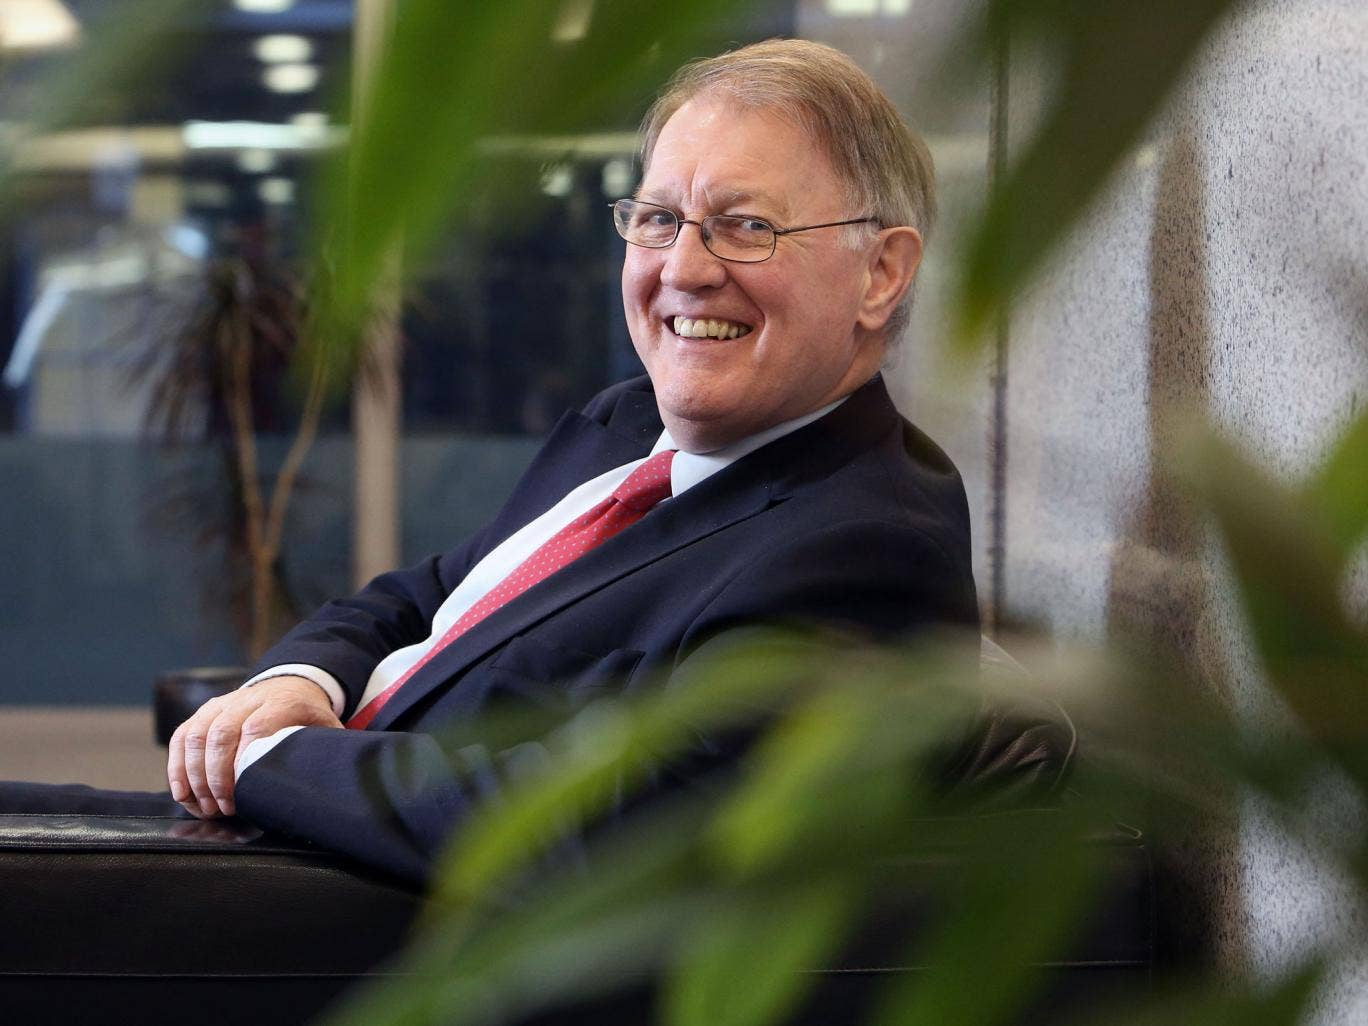 Sir Mike Richards is one of the most respected figures in the health sector